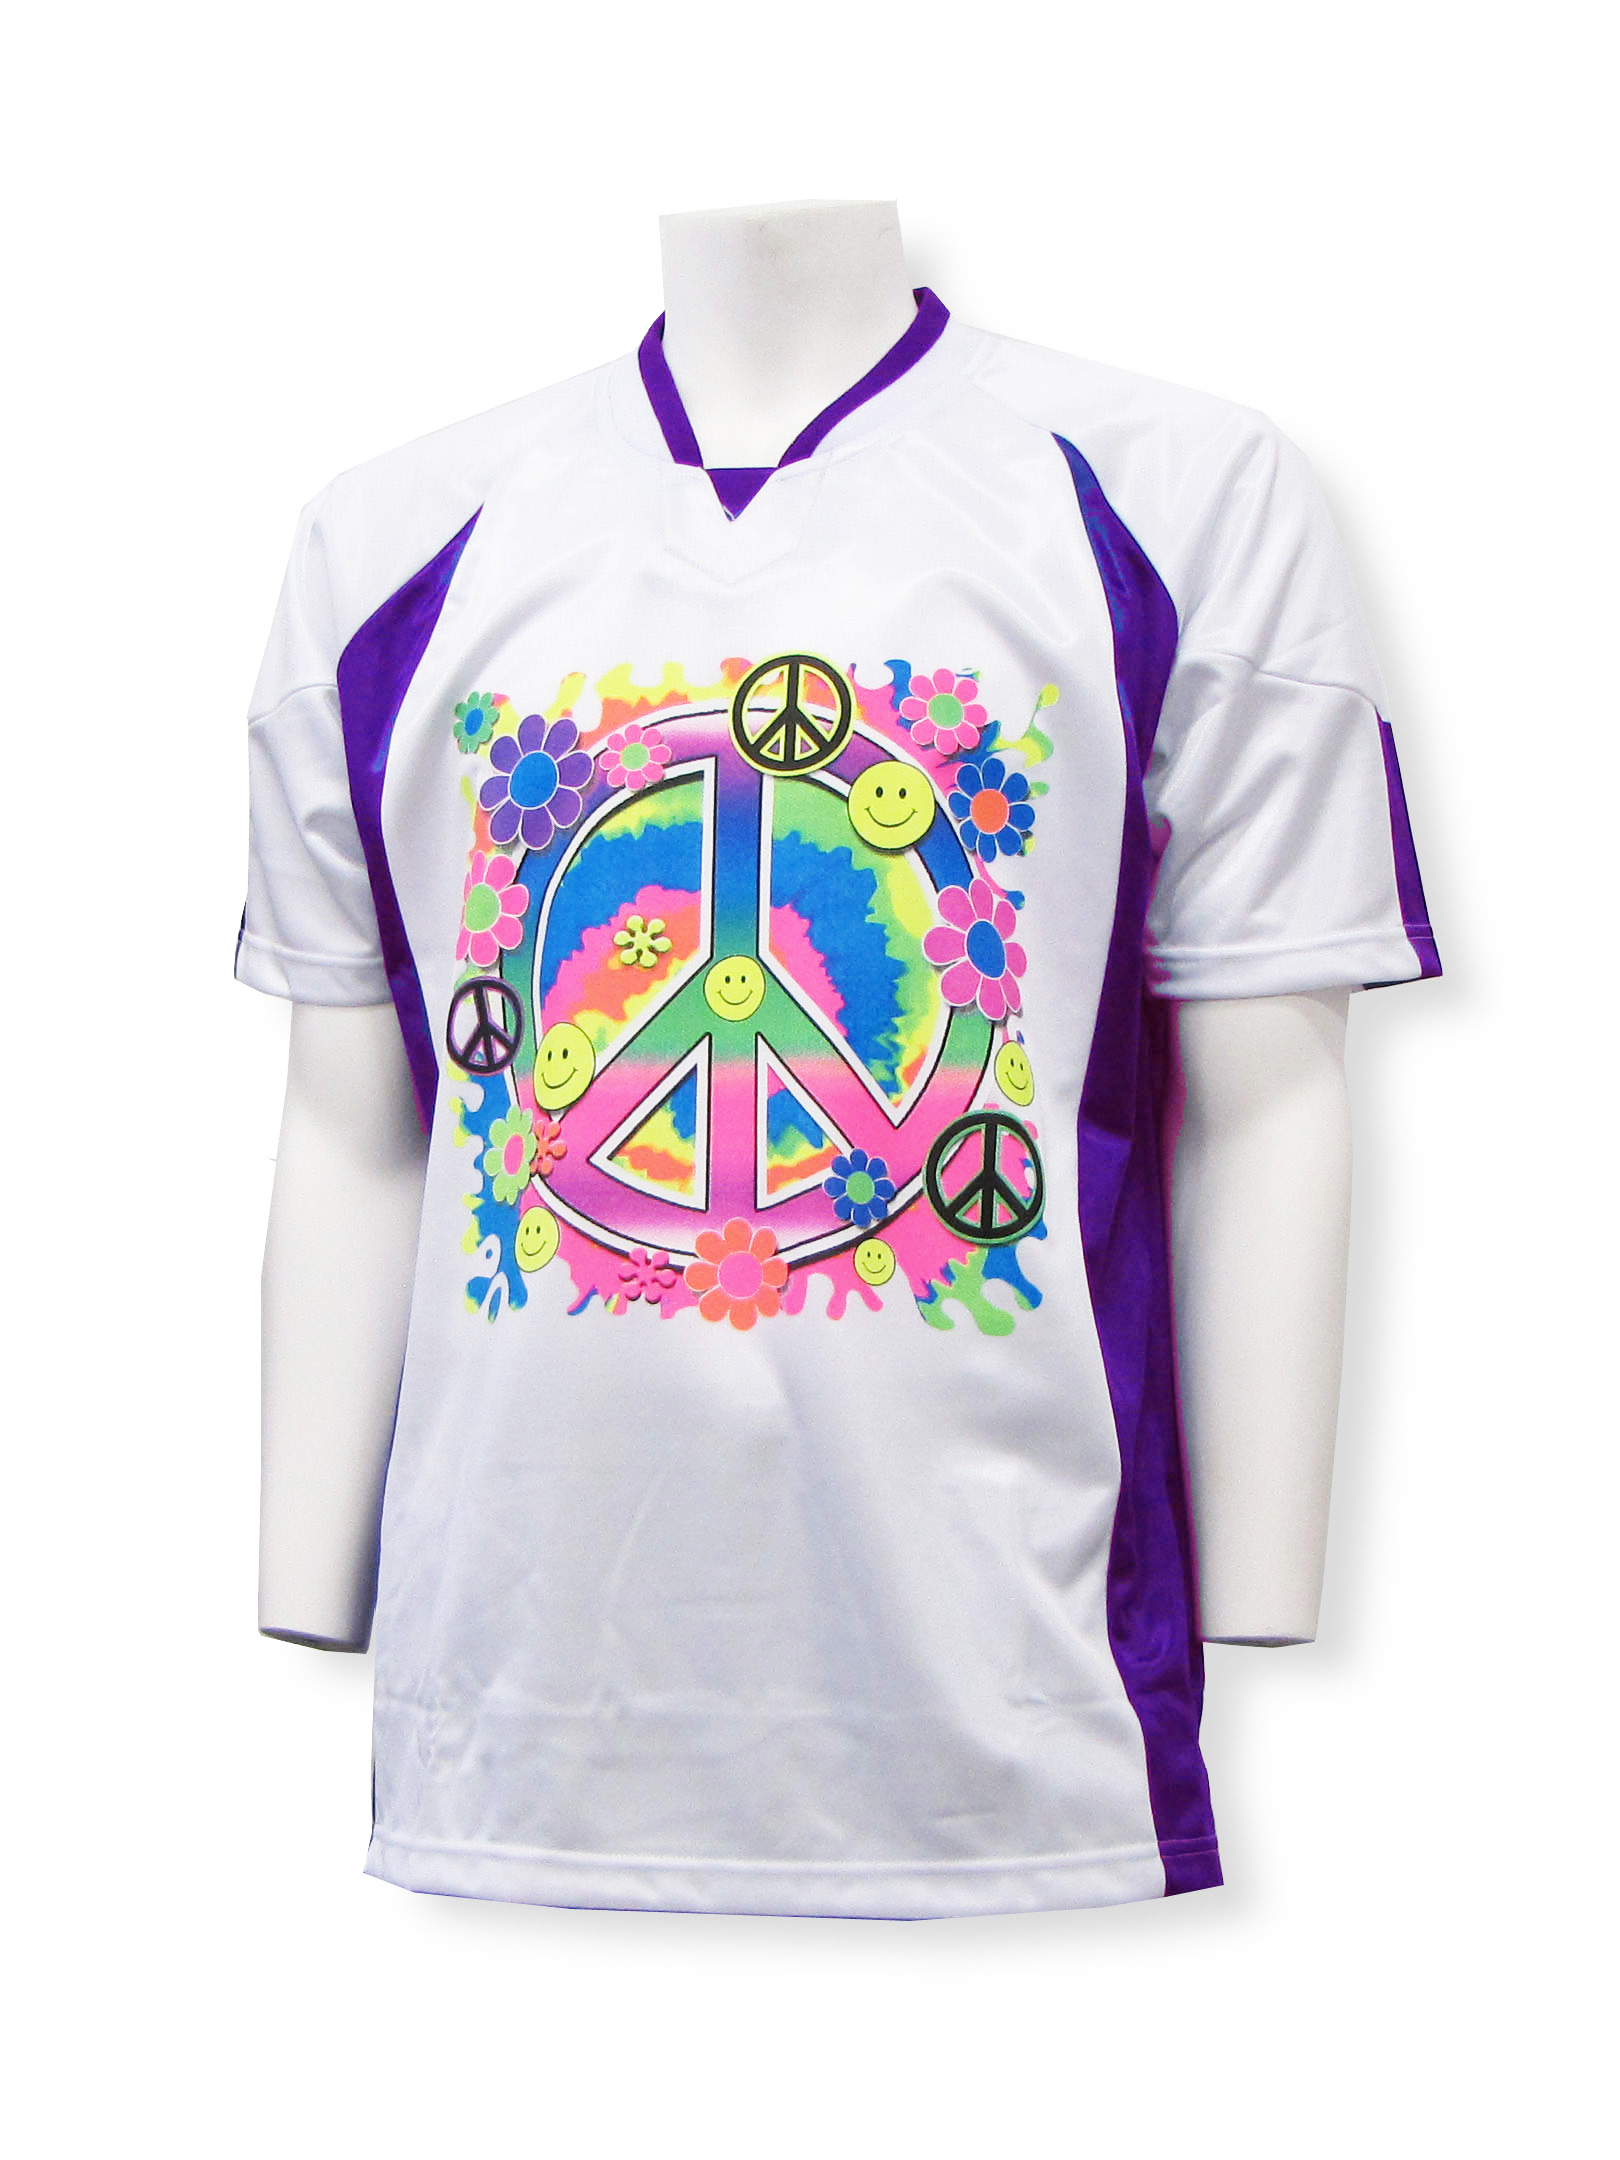 Peace Keeper short-sleeve goalie jersey in white/purple by Code Four Athletics